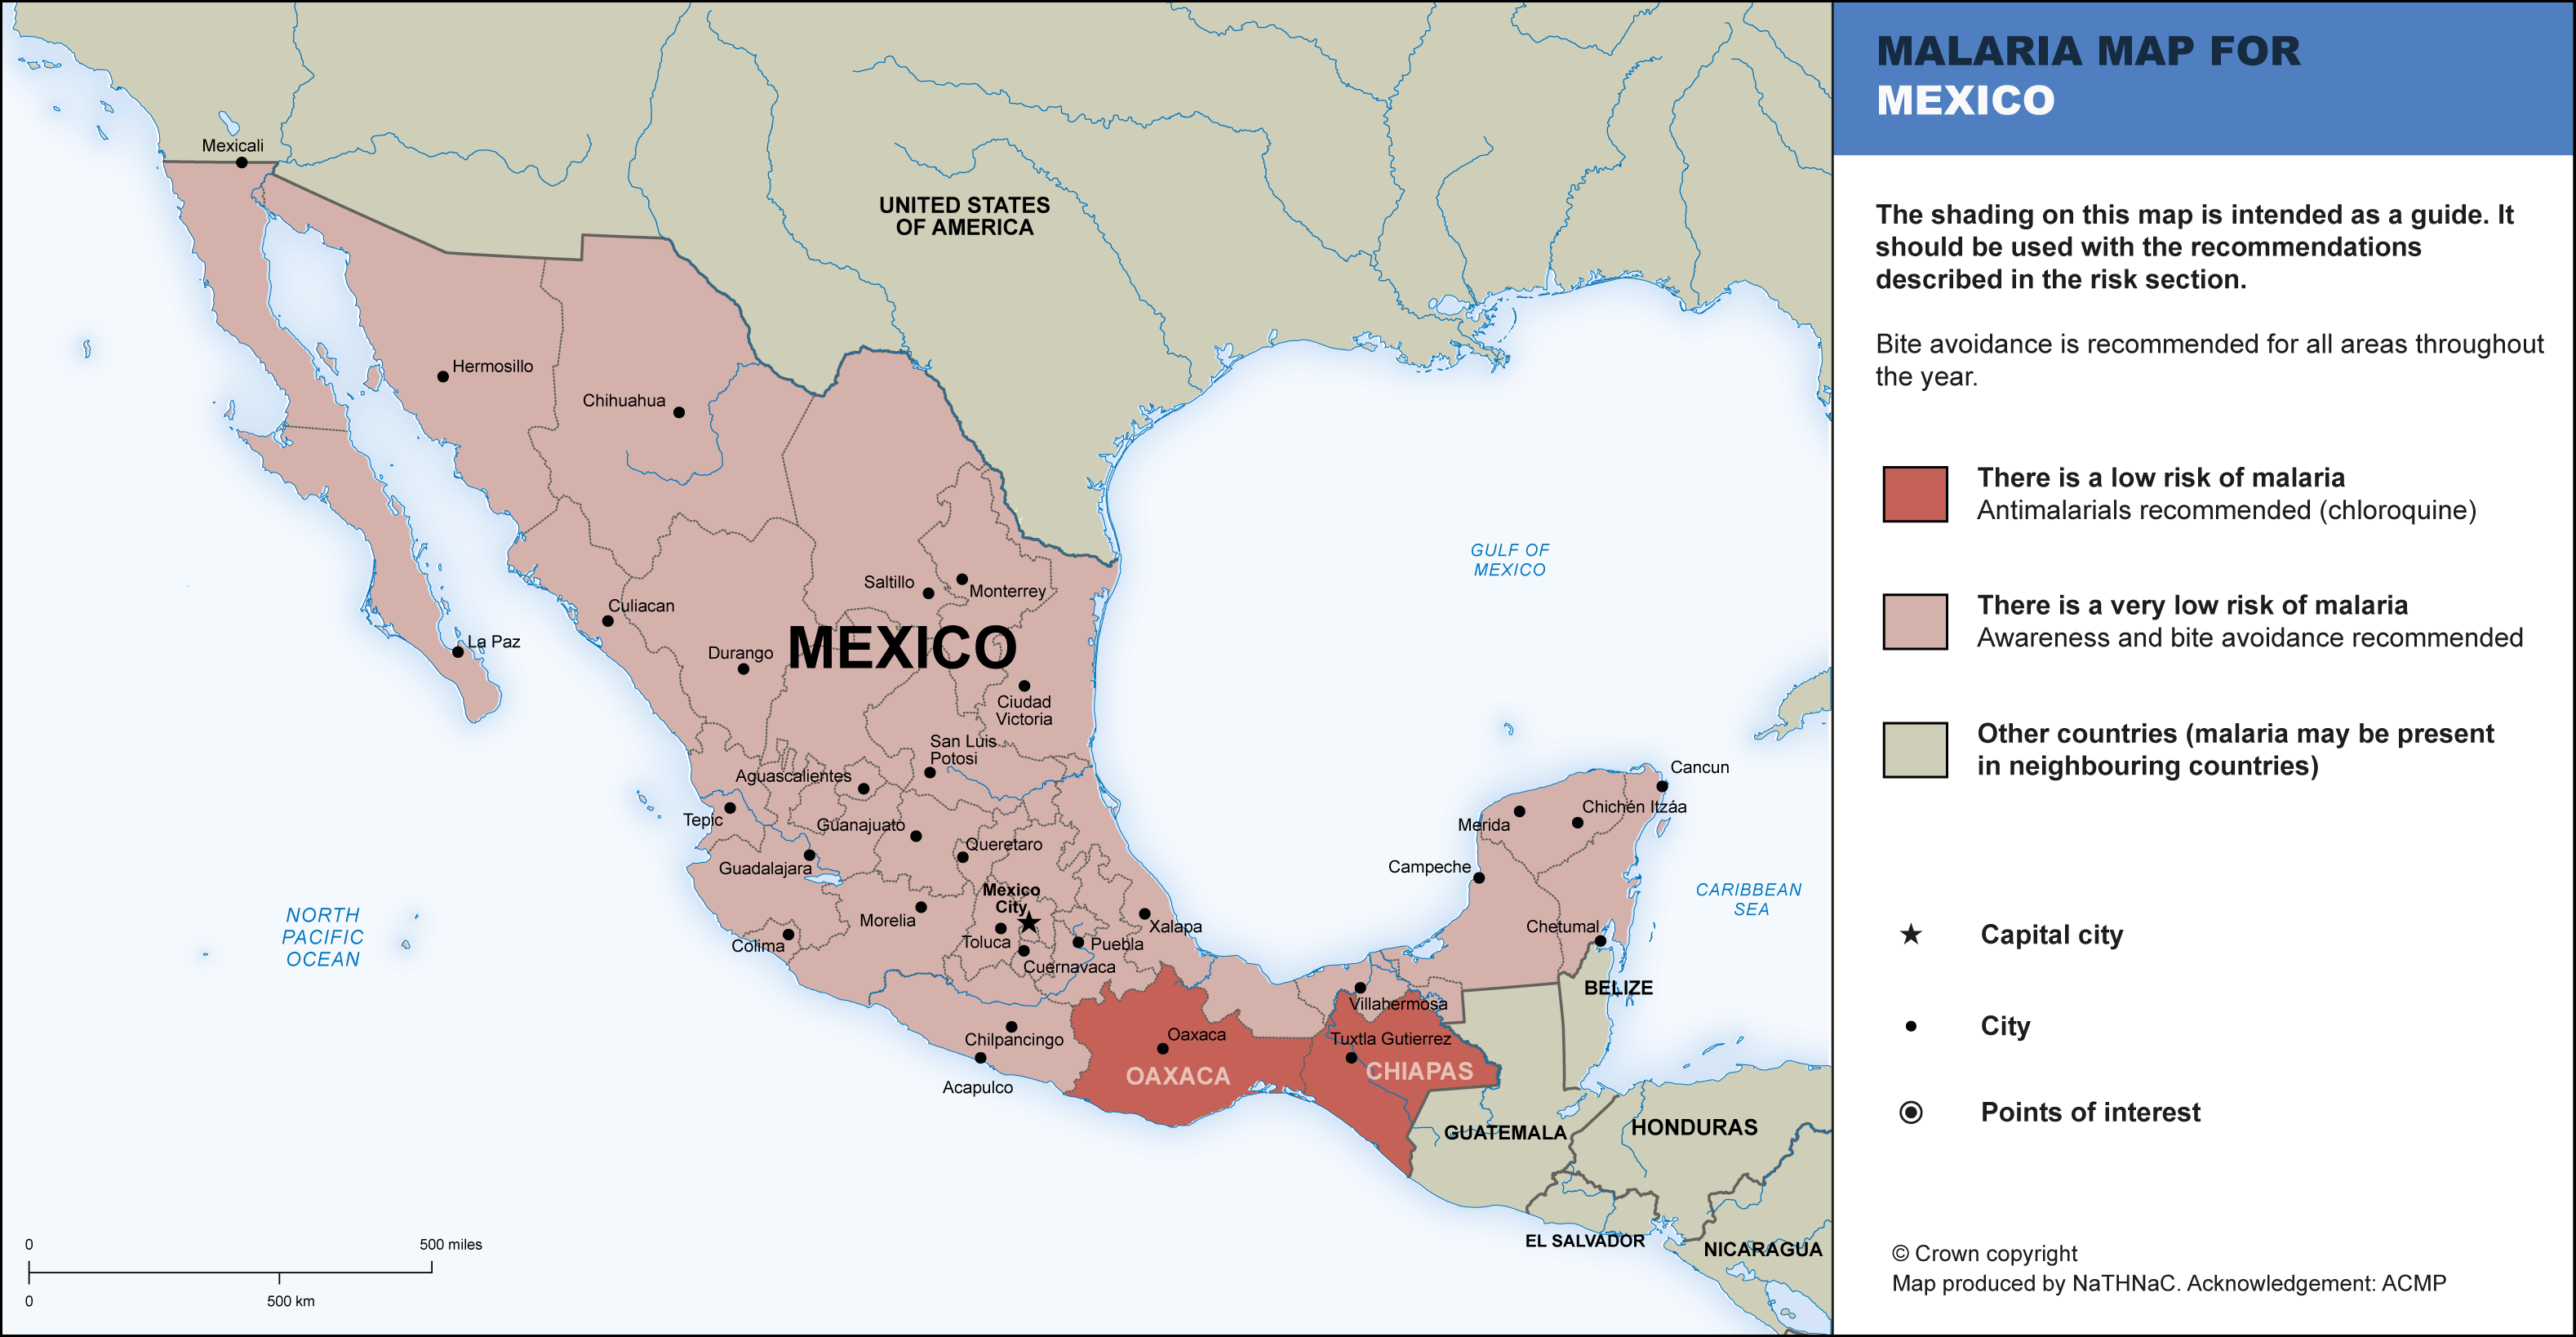 Maps Update 728425 Mexico City on the Map Where is Mexico City – Mexico City on Map